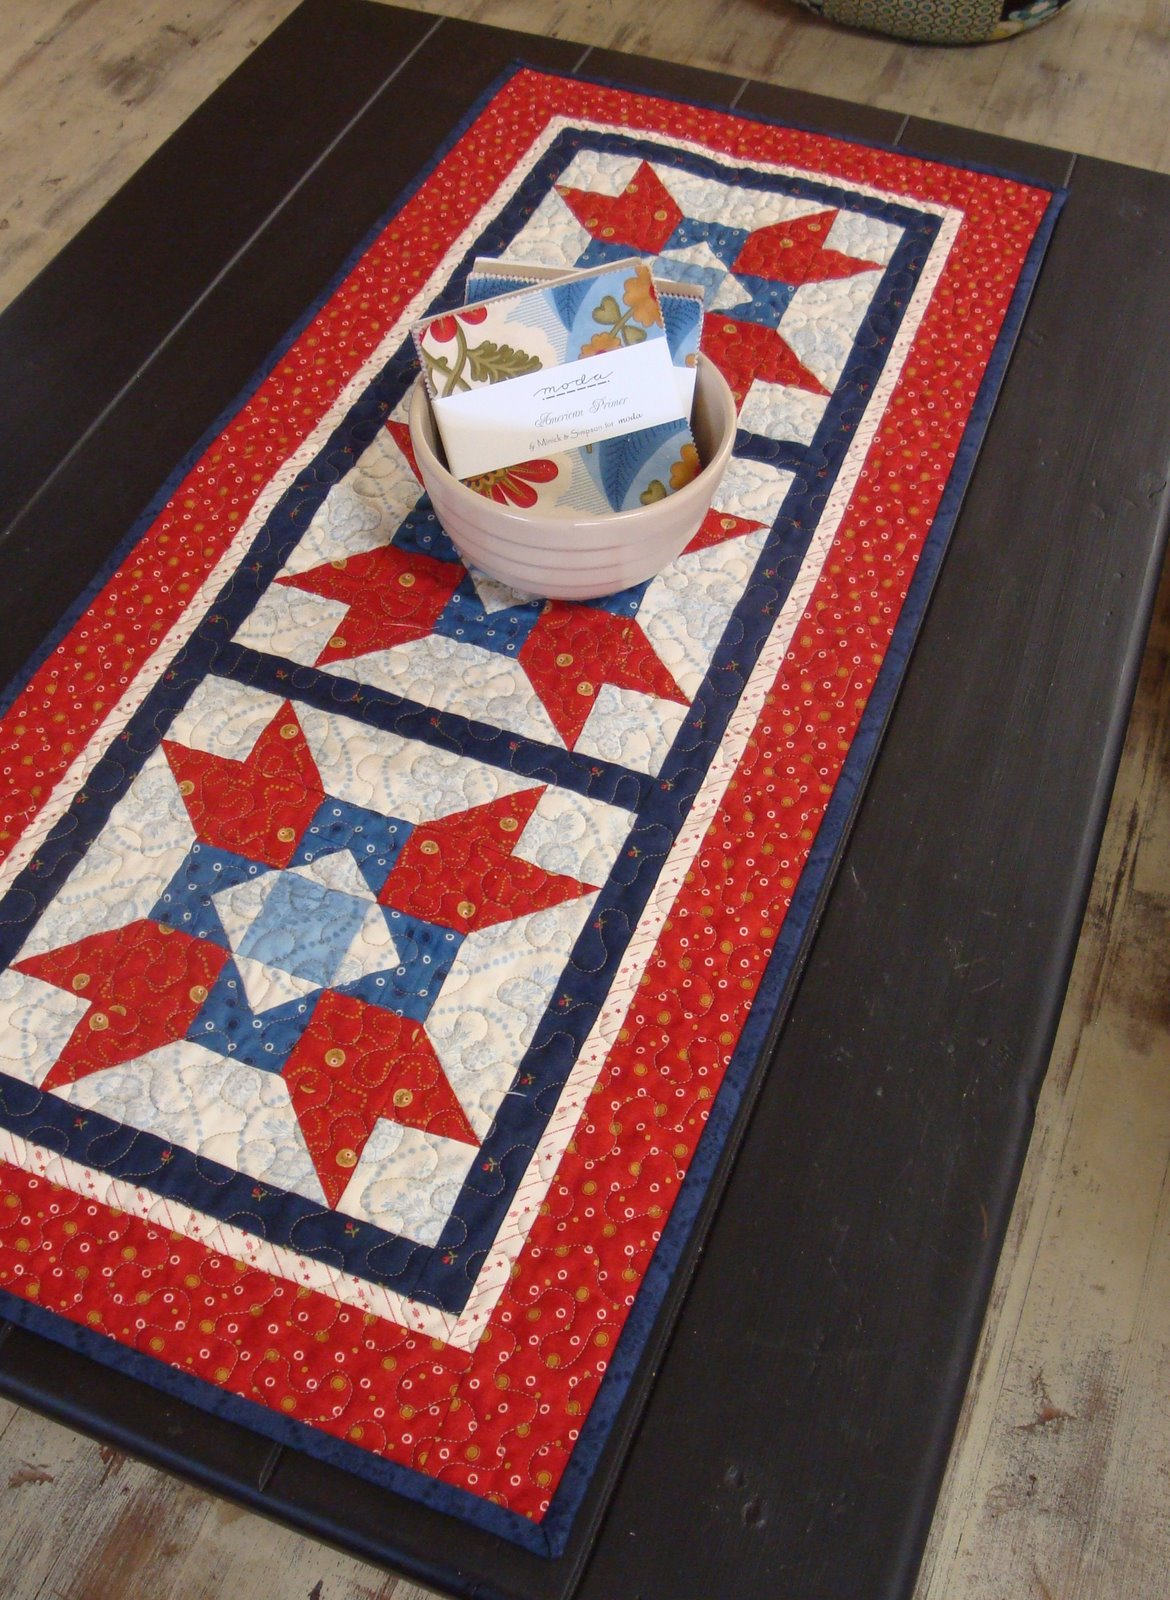 [Gather+Together+Table+Runner]